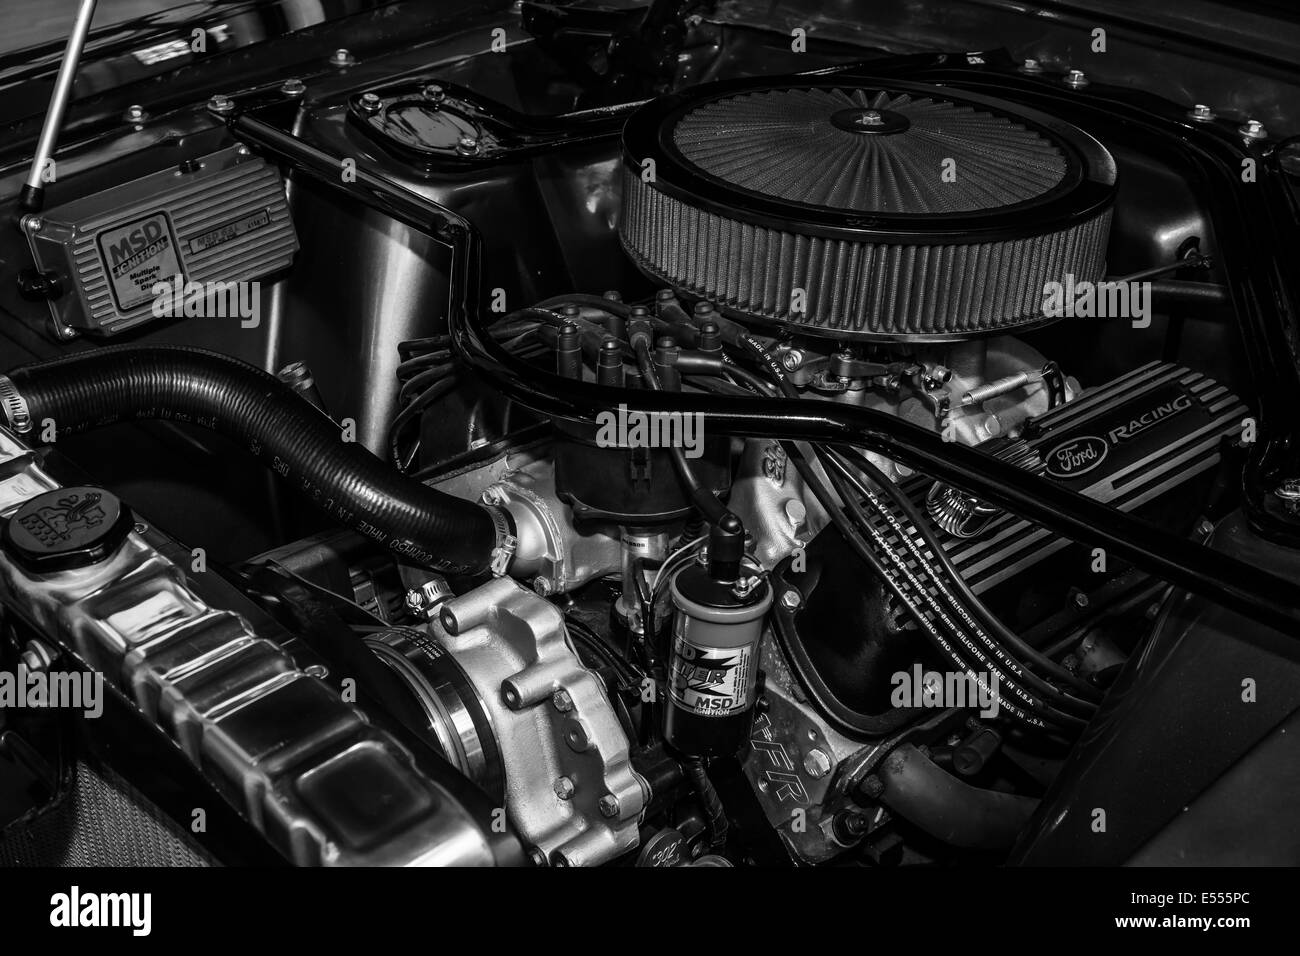 Boss 302 engine for high-performance variant of the Ford